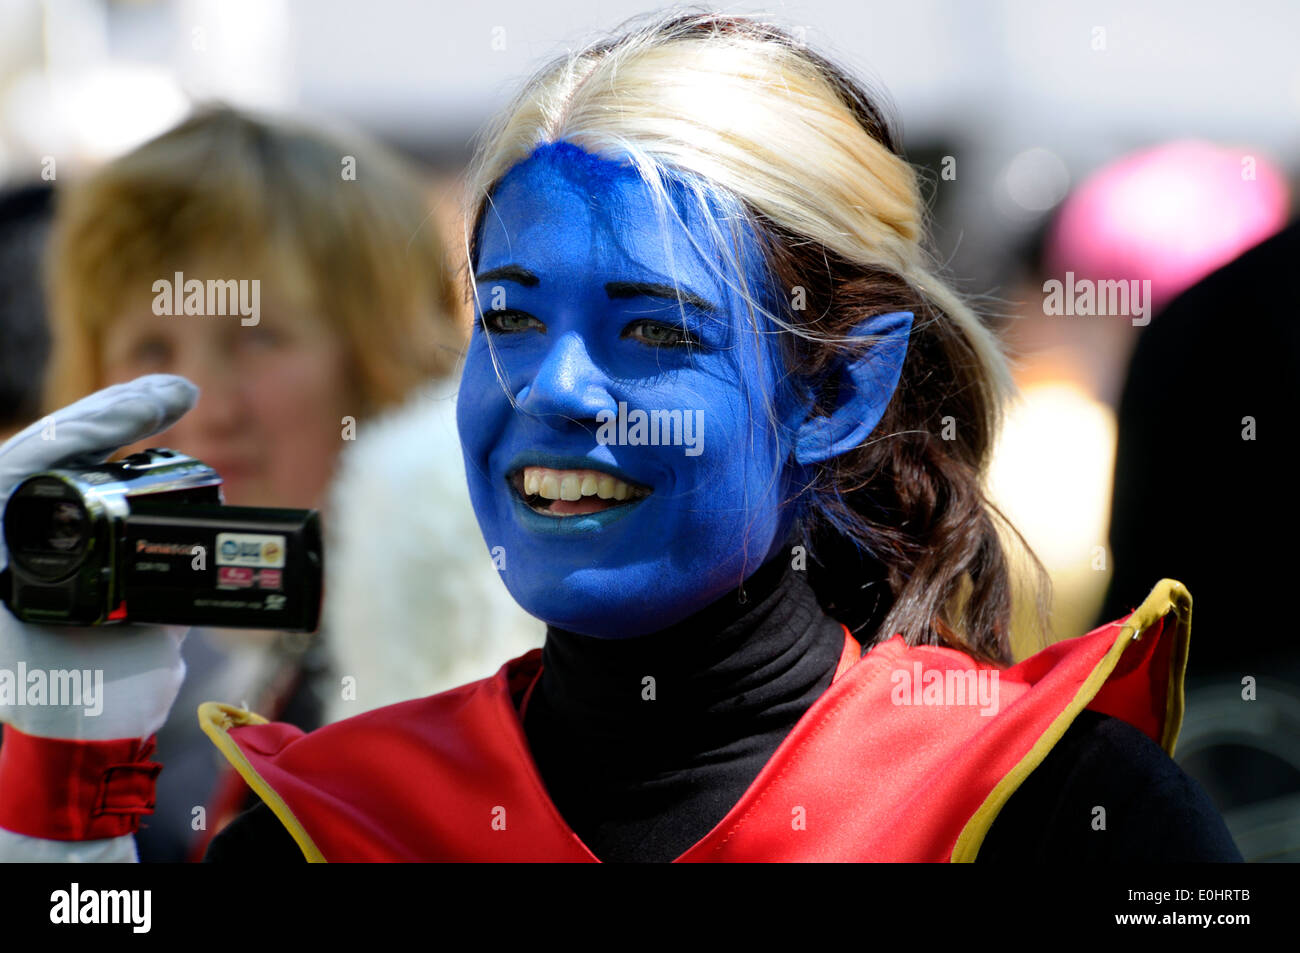 X-Men cosplay event in Leicester Square, London, 2104. Woman in costume with camcorder - Stock Image